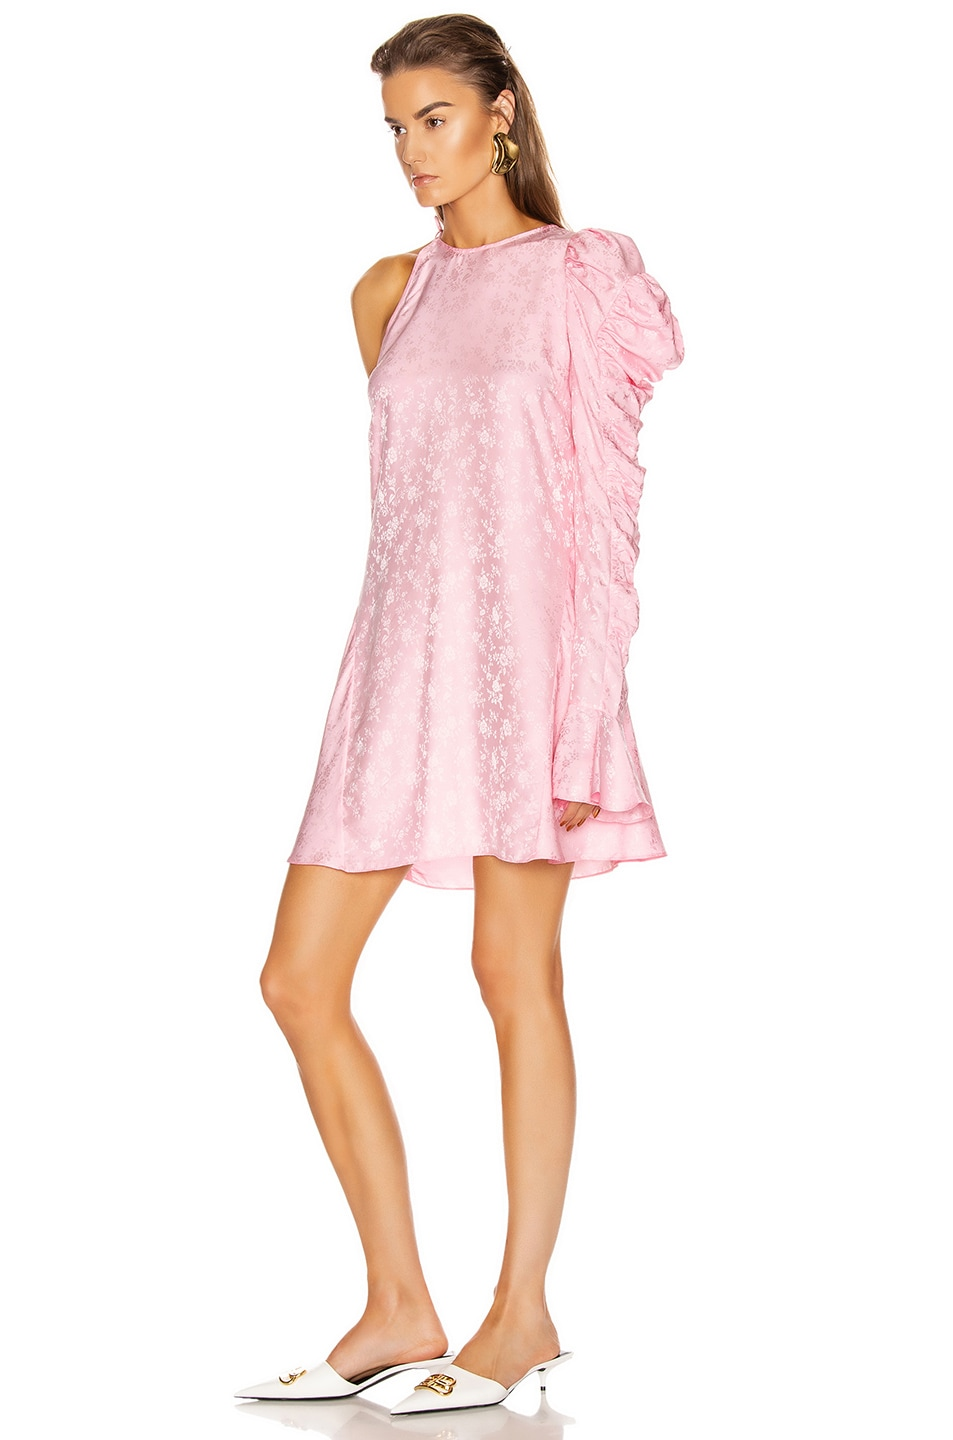 Image 3 of Les Reveries x FWRD Asymmetrical Puff Sleeve Dress in Rose Pink